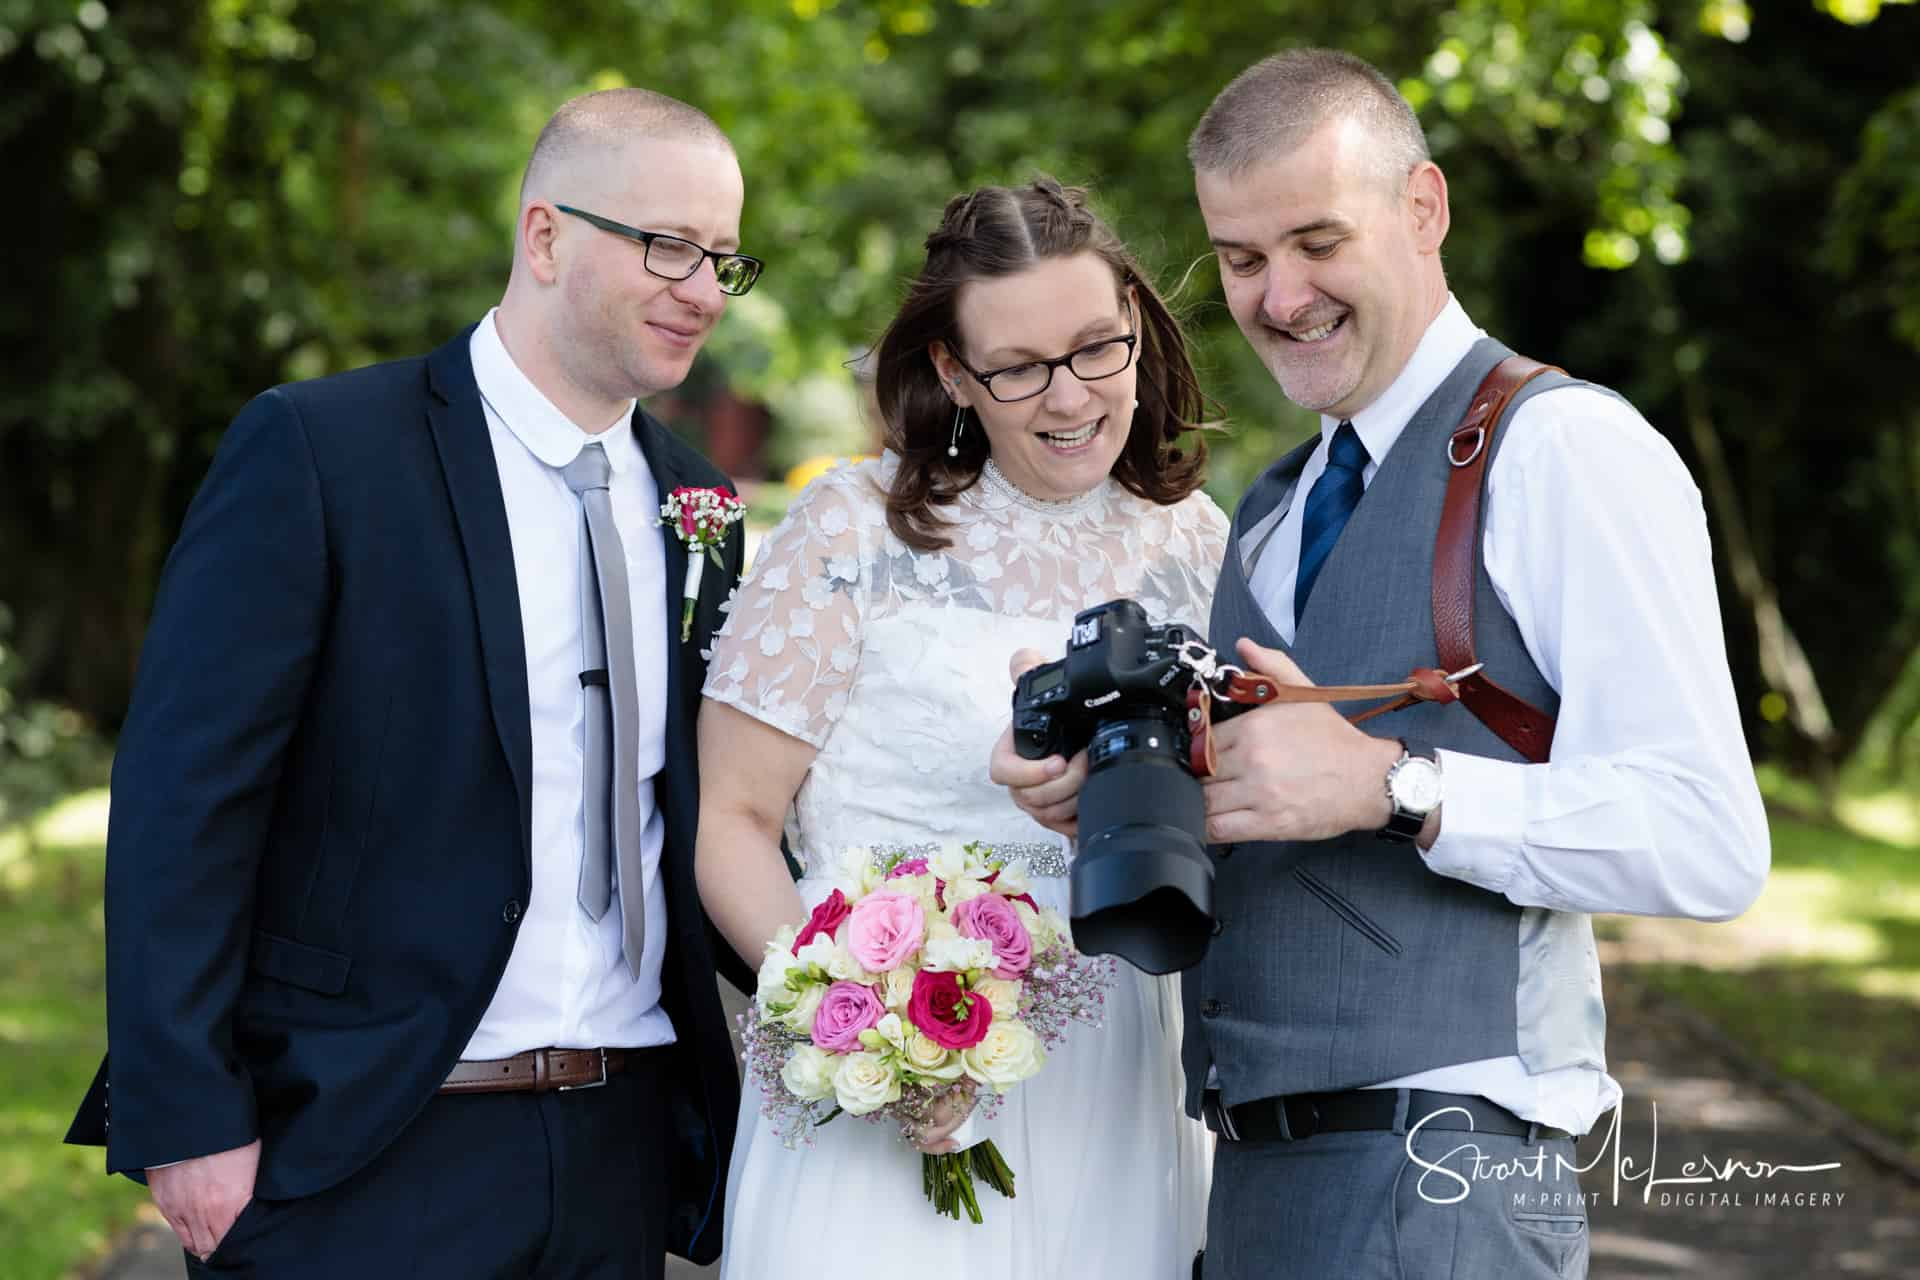 Dukinfield Town Hall Wedding Photography by Stuart McLernon | M-PRINT Digital Imagery